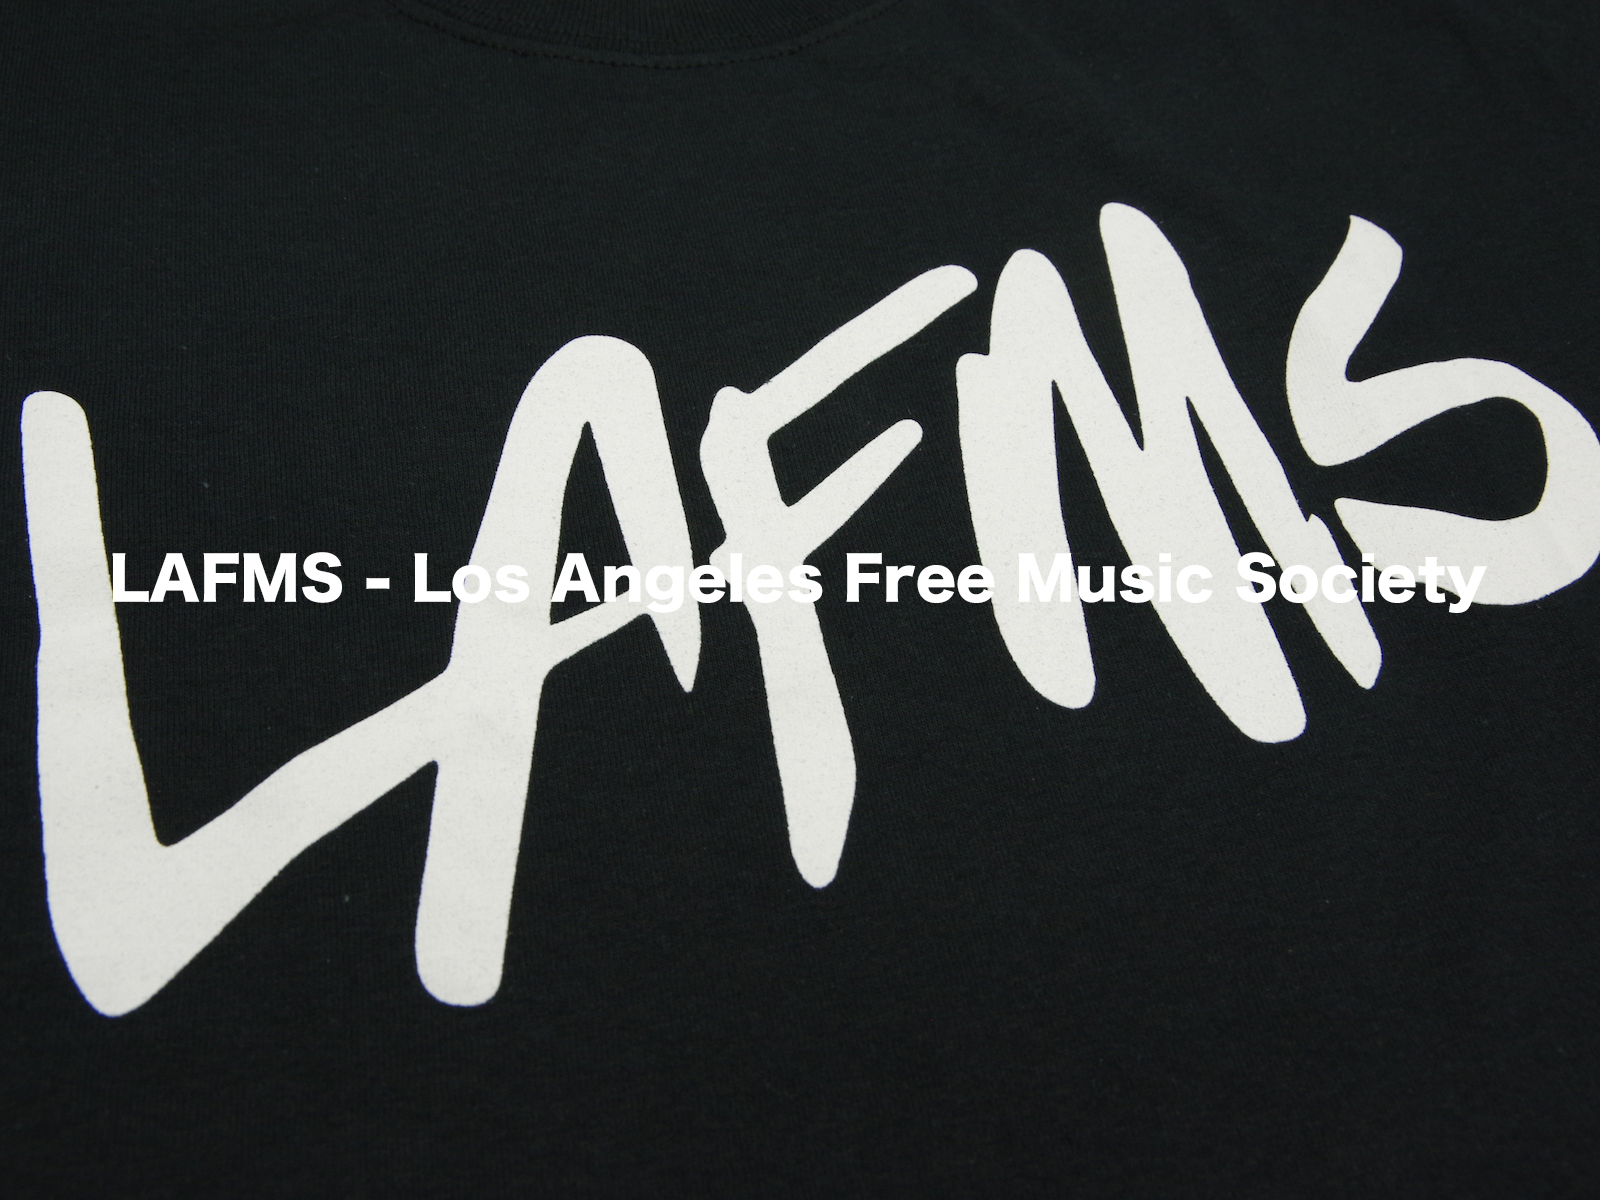 LAFMS – Los Angeles Free Music Society